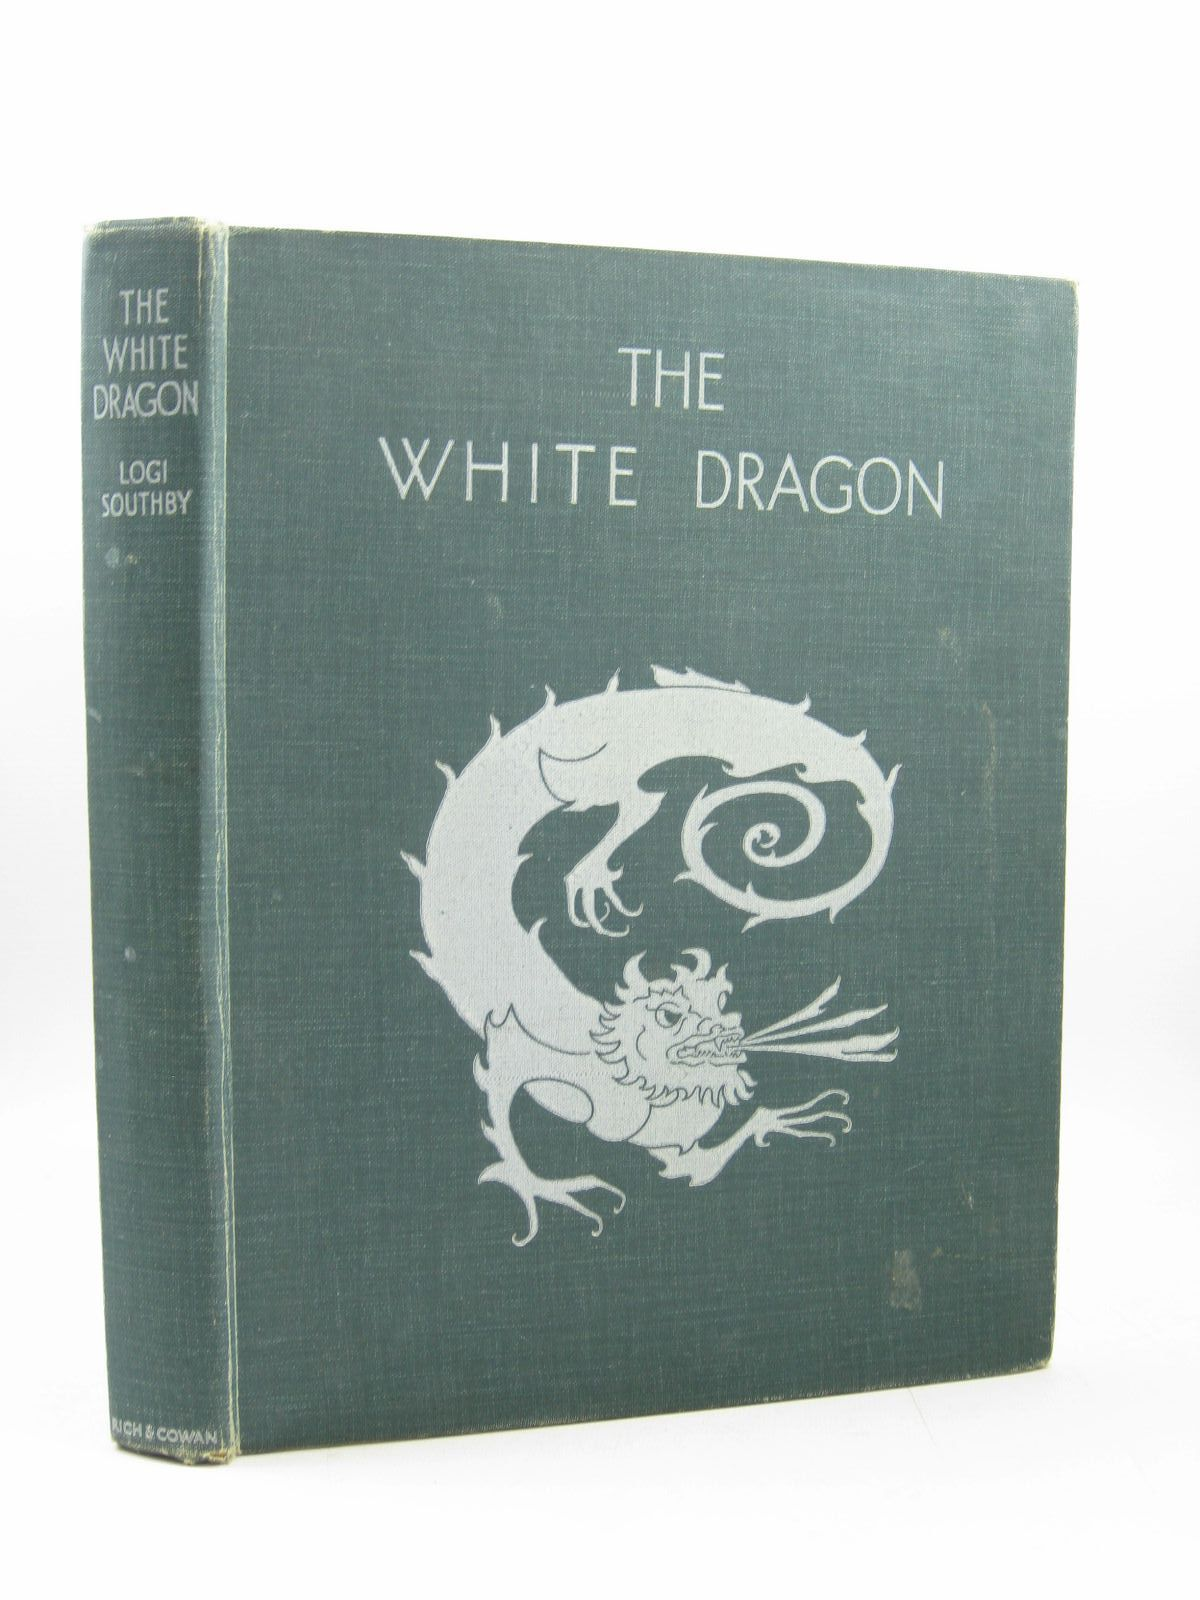 Photo of THE WHITE DRAGON written by Southby, Logi illustrated by Southby, Logi published by Rich & Cowan Ltd. (STOCK CODE: 1314095)  for sale by Stella & Rose's Books